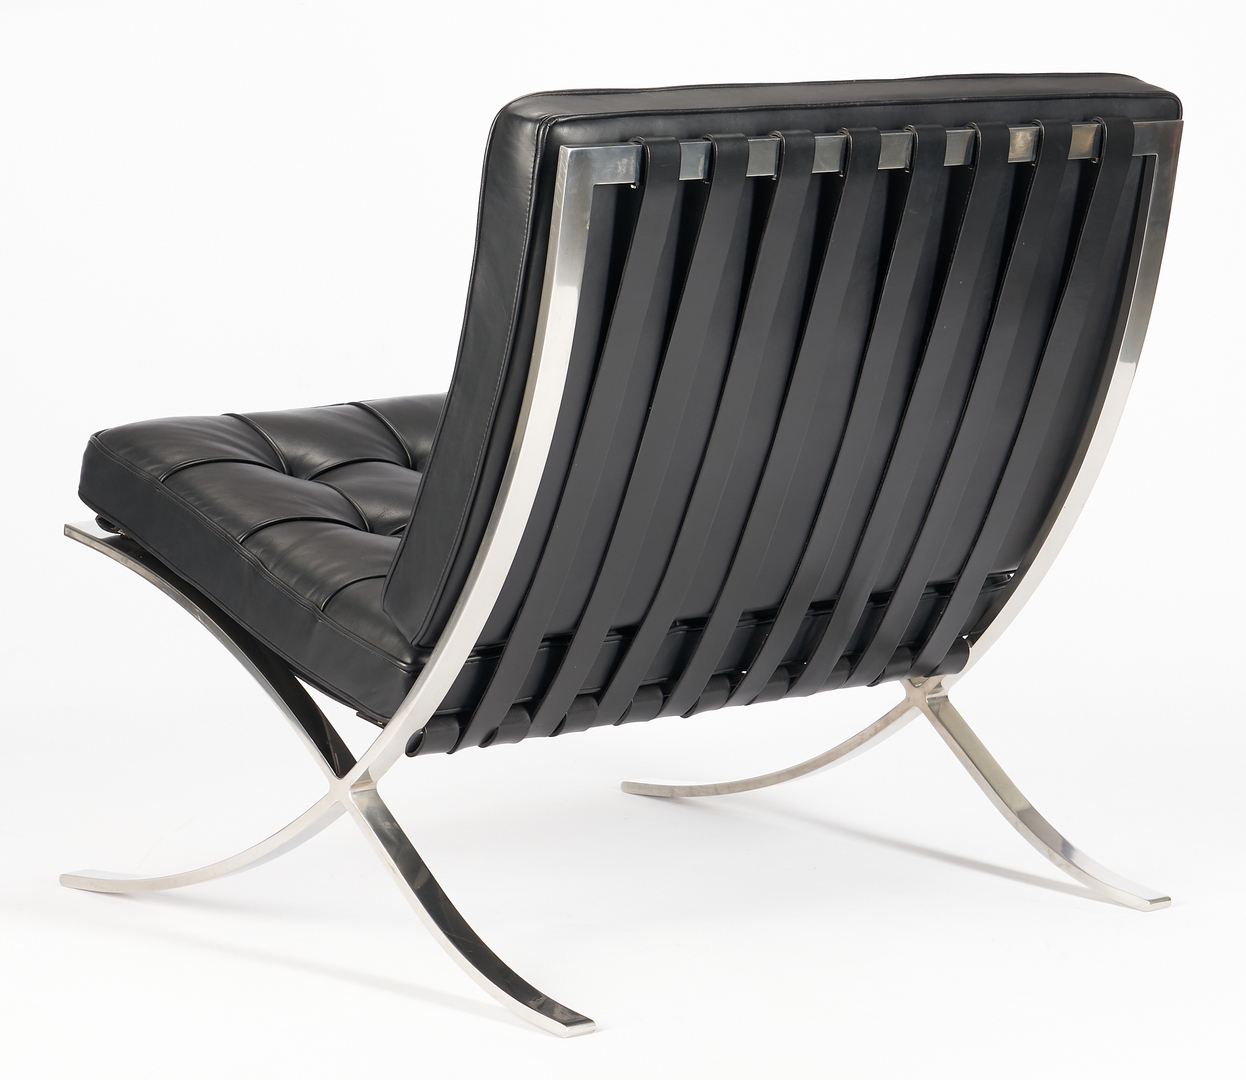 Lot 601: Pair Labeled Knoll Barcelona Chairs, Mies van der Rohe